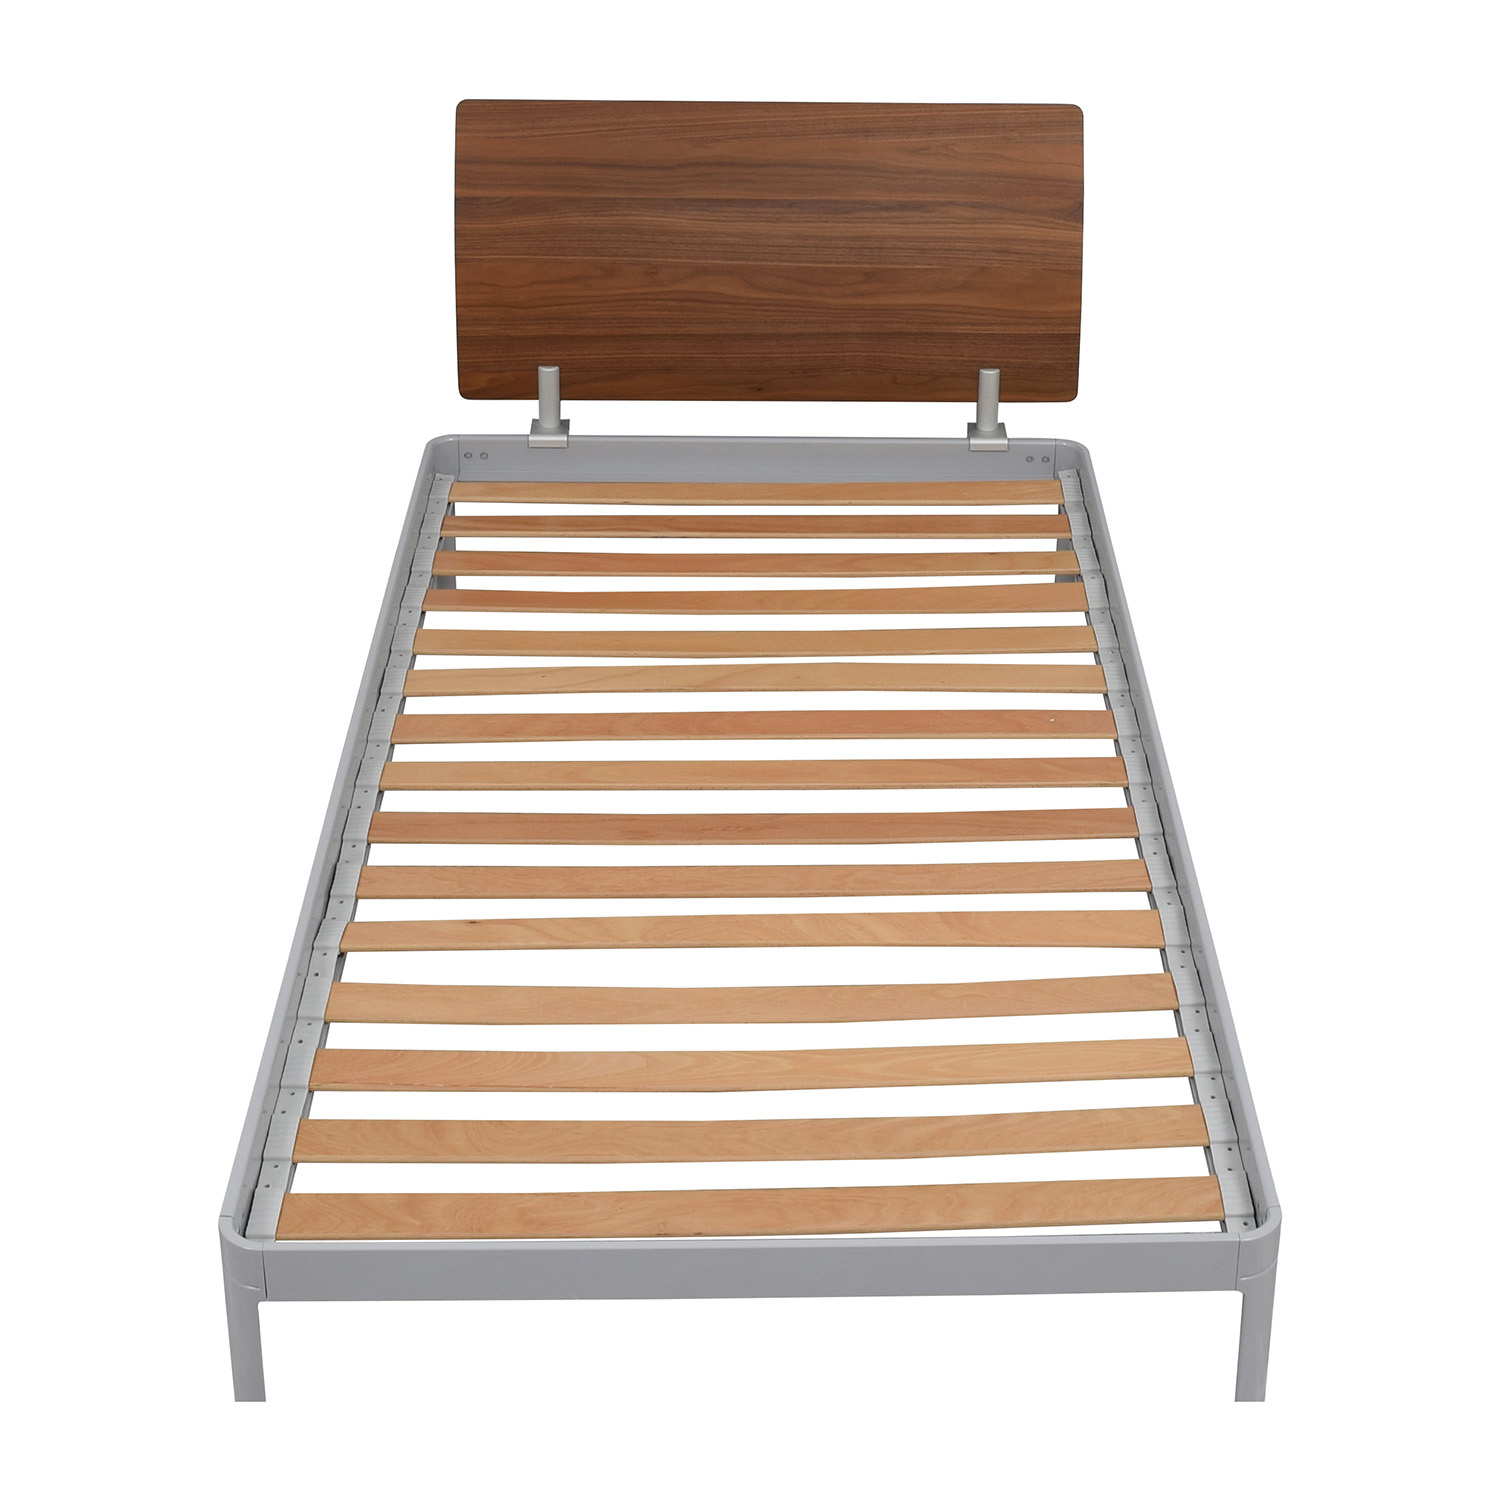 ... Design Within Reach Twin Platform Bed Frame With Walnut Headboard  Design Within Reach ...